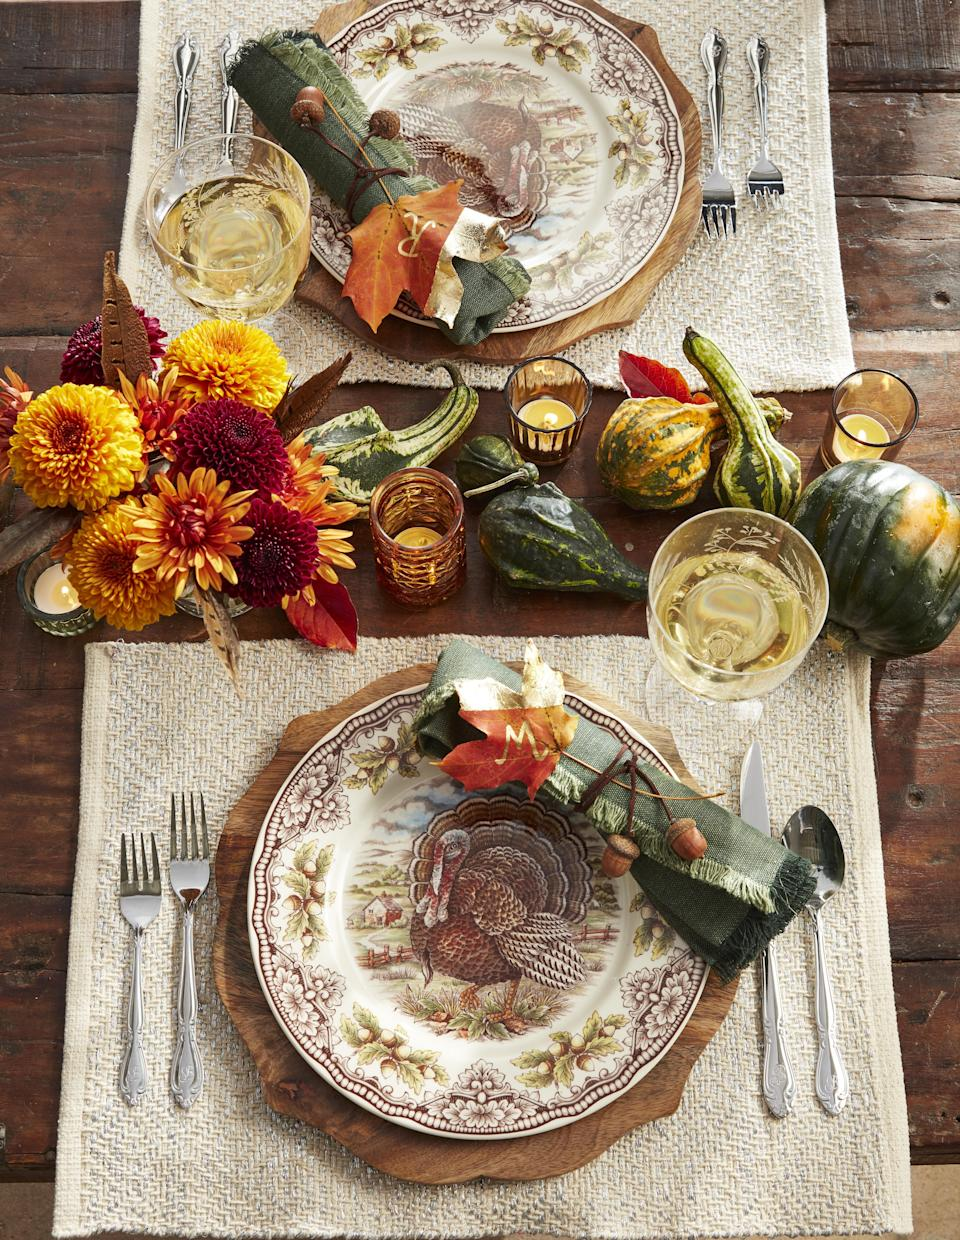 """<p>While you may love to experiment in the kitchen, when it comes to your <a href=""""https://www.countryliving.com/food-drinks/g637/thanksgiving-menus/"""" rel=""""nofollow noopener"""" target=""""_blank"""" data-ylk=""""slk:Thanksgiving menu"""" class=""""link rapid-noclick-resp"""">Thanksgiving menu</a> most families stick with tradition and prepare the same dishes year after year. Tradition has its place, but don't let your imagination be stifled. This year use that creativity and crafting know-how to make an inviting, unique fall scene with one of these easy DIY projects. From rustic <a href=""""https://www.countryliving.com/entertaining/g634/thanksgiving-table-settings-1108/"""" rel=""""nofollow noopener"""" target=""""_blank"""" data-ylk=""""slk:Thanksgiving table settings"""" class=""""link rapid-noclick-resp"""">Thanksgiving table settings</a> to easy Thanksgiving decorating ideas for your living and dining room, there's a new idea in here for just about every host—regardless of personal style or taste. Twirl up <a href=""""https://www.countryliving.com/entertaining/g2130/thanksgiving-centerpieces/"""" rel=""""nofollow noopener"""" target=""""_blank"""" data-ylk=""""slk:Thanksgiving centerpieces"""" class=""""link rapid-noclick-resp"""">Thanksgiving centerpieces</a> to delight all your dinner guests, make charming ice buckets out of fake, reusable pumpkins, or string together miniature wreaths with which to decorate your candles. When it comes to DIY decor, the possibilities are endless! </p><p>Looking for outdoor Thanksgiving decorations, too? We've got a ton of those: Our Thanksgiving <a href=""""https://www.countryliving.com/diy-crafts/g2610/fall-door-decorations/"""" rel=""""nofollow noopener"""" target=""""_blank"""" data-ylk=""""slk:door decorations"""" class=""""link rapid-noclick-resp"""">door decorations</a> and <a href=""""https://www.countryliving.com/diy-crafts/g1988/fall-craft-projects/"""" rel=""""nofollow noopener"""" target=""""_blank"""" data-ylk=""""slk:fall wreaths"""" class=""""link rapid-noclick-resp"""">fall wreaths</a> are an easy way to refresh your front porch and make a lasting """